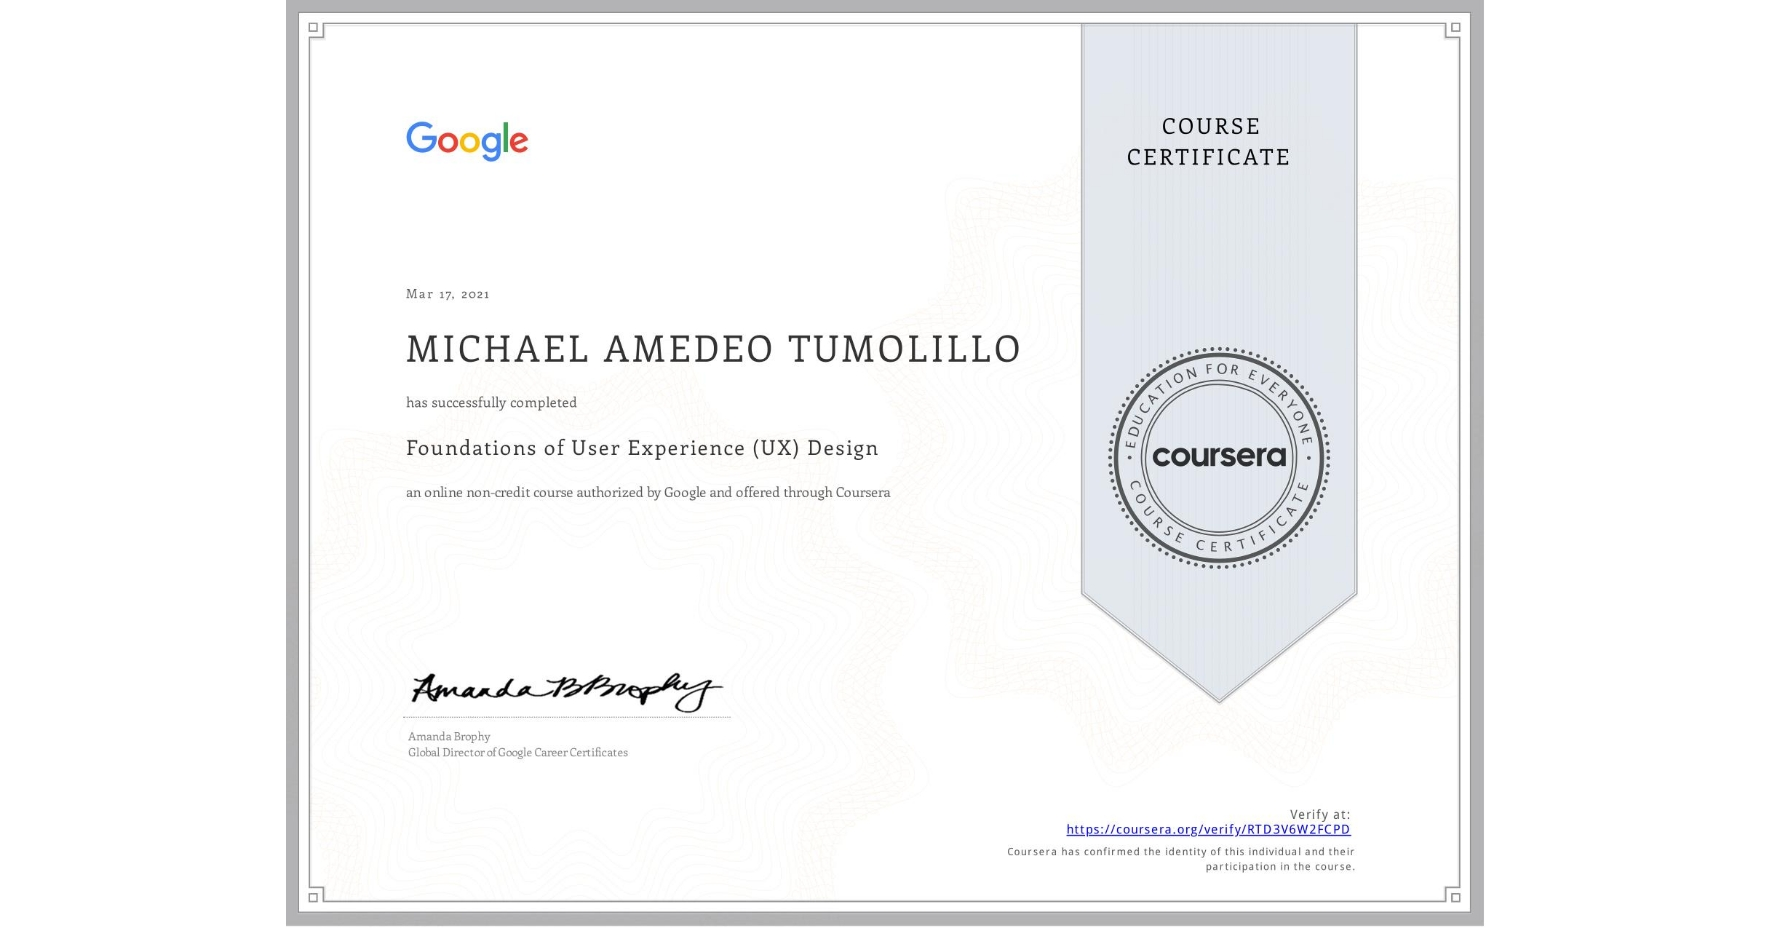 View certificate for Michael Amedeo Tumolillo, Foundations of User Experience (UX) Design, an online non-credit course authorized by Google and offered through Coursera